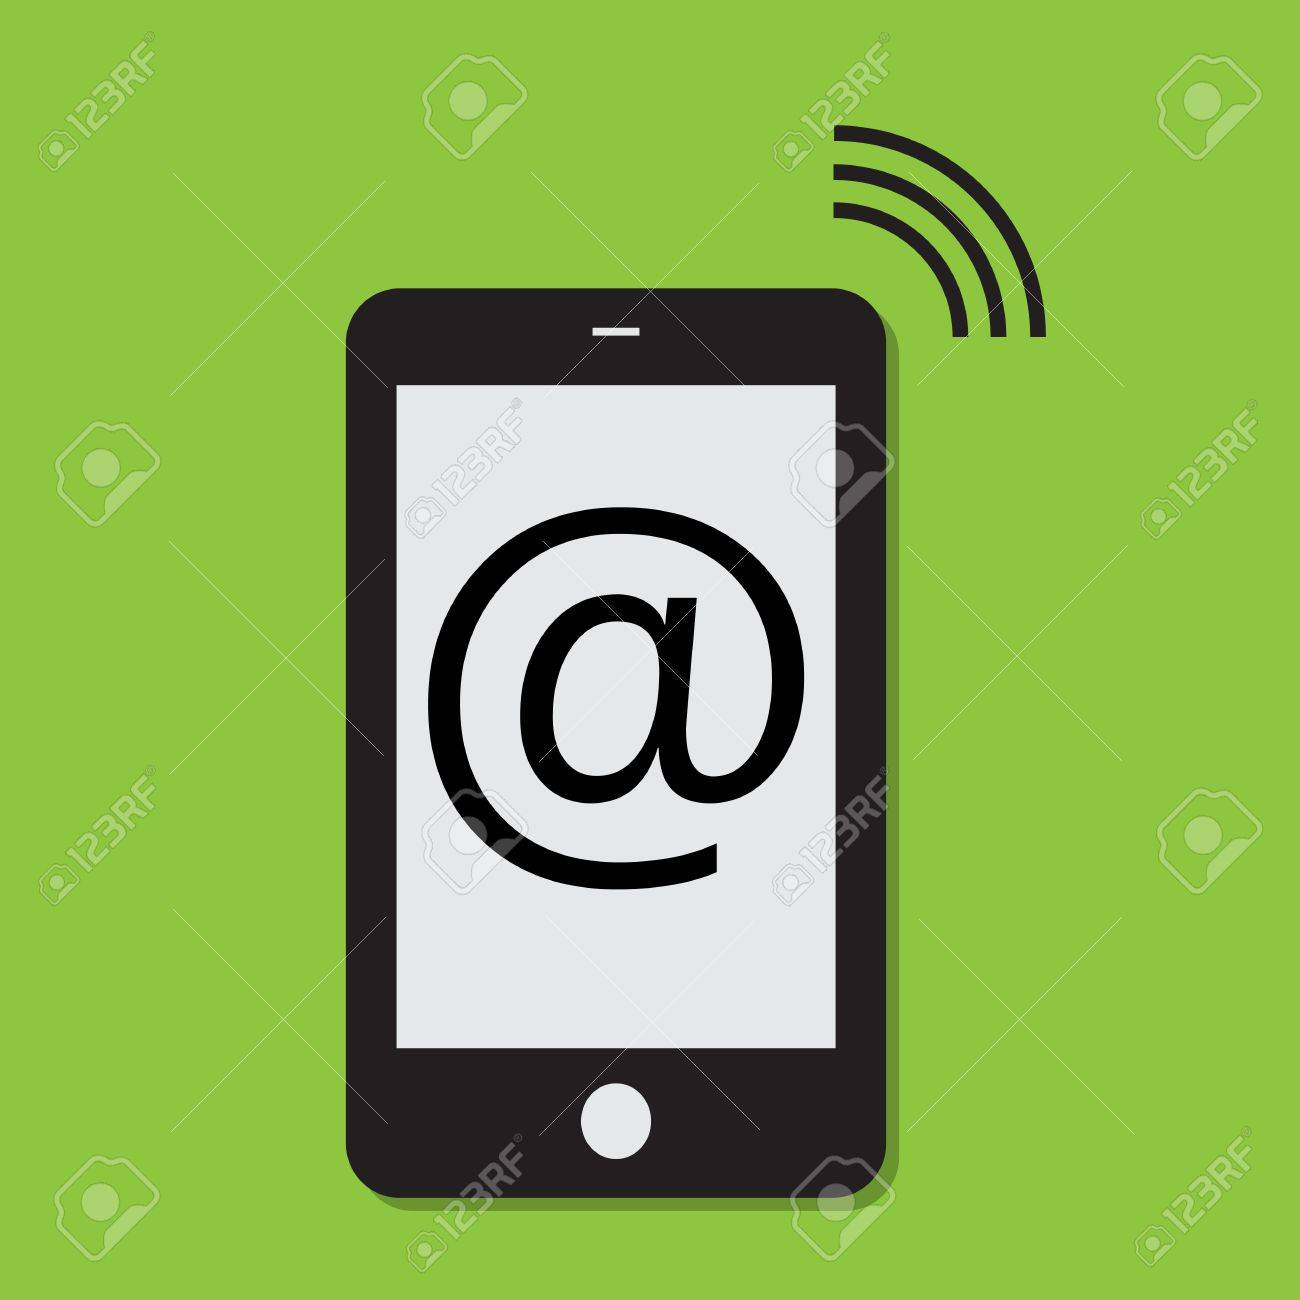 Mobile phone internet connection Stock Vector - 11237747